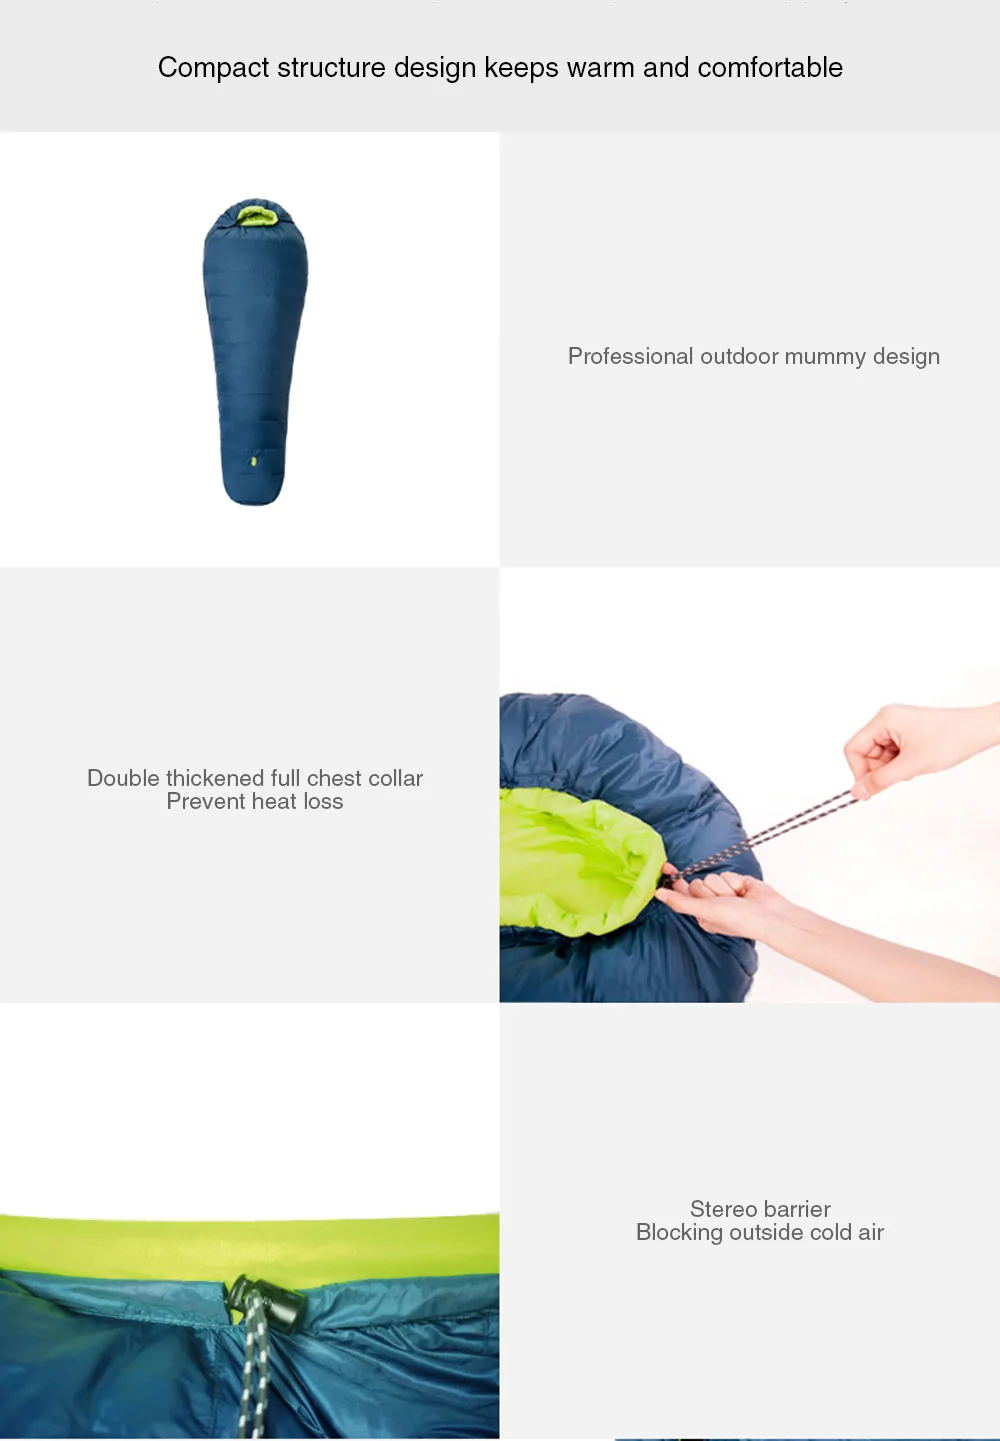 xiaomi zaofeng sleeping bag price